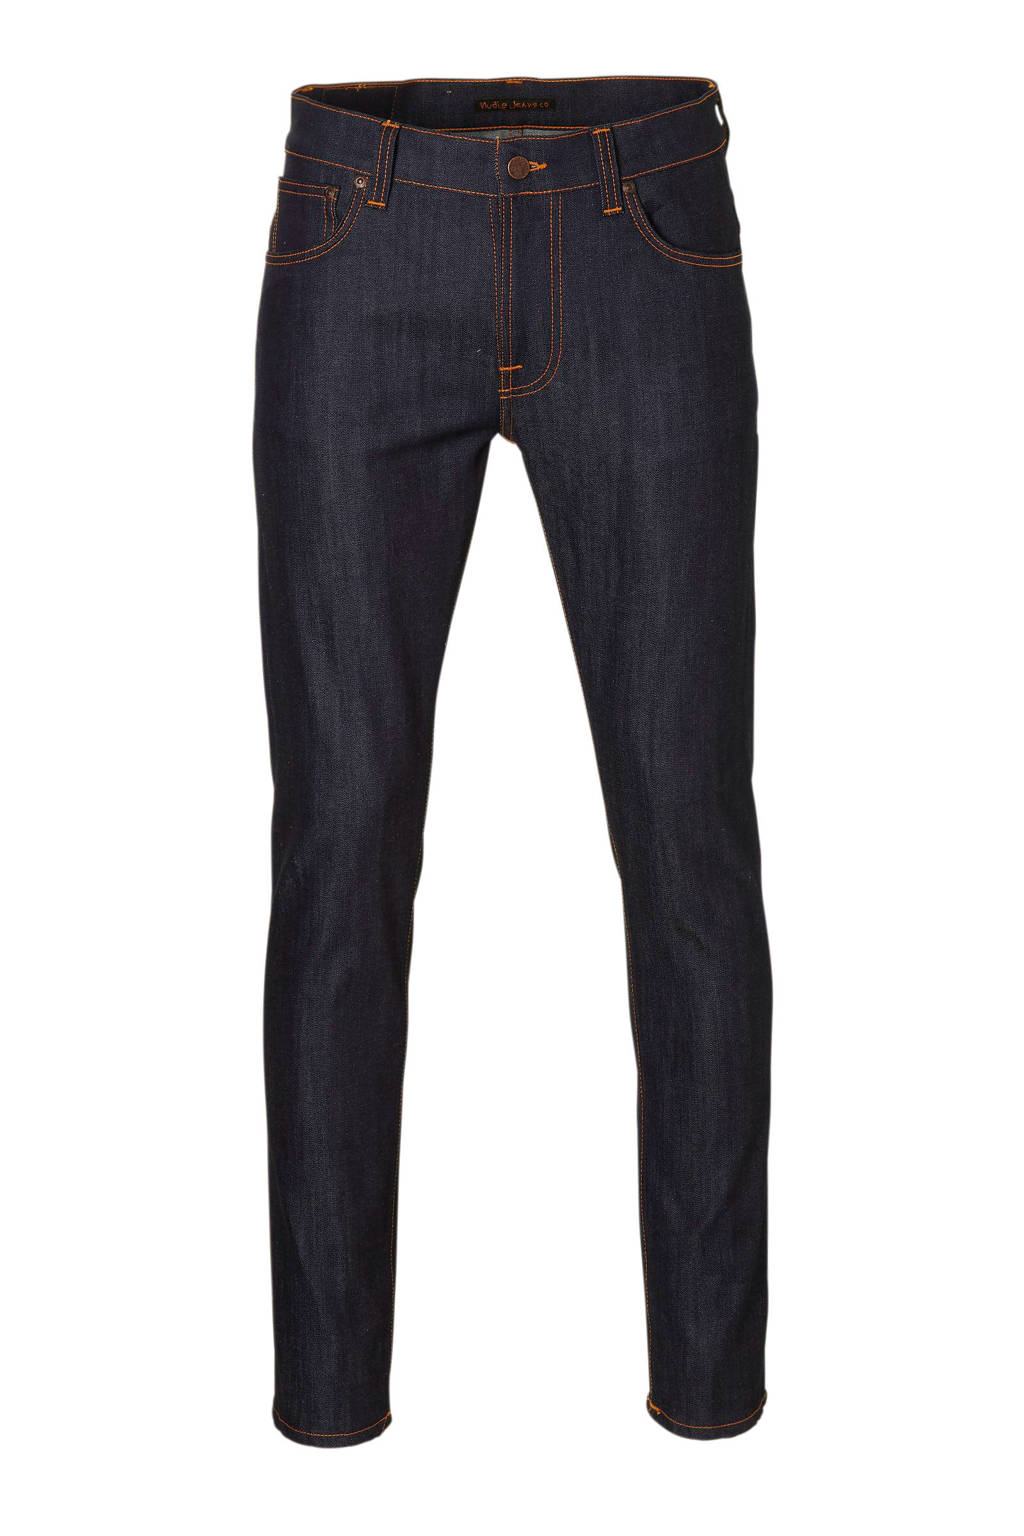 Nudie Jeans jeans Thin Finn, Dark denim